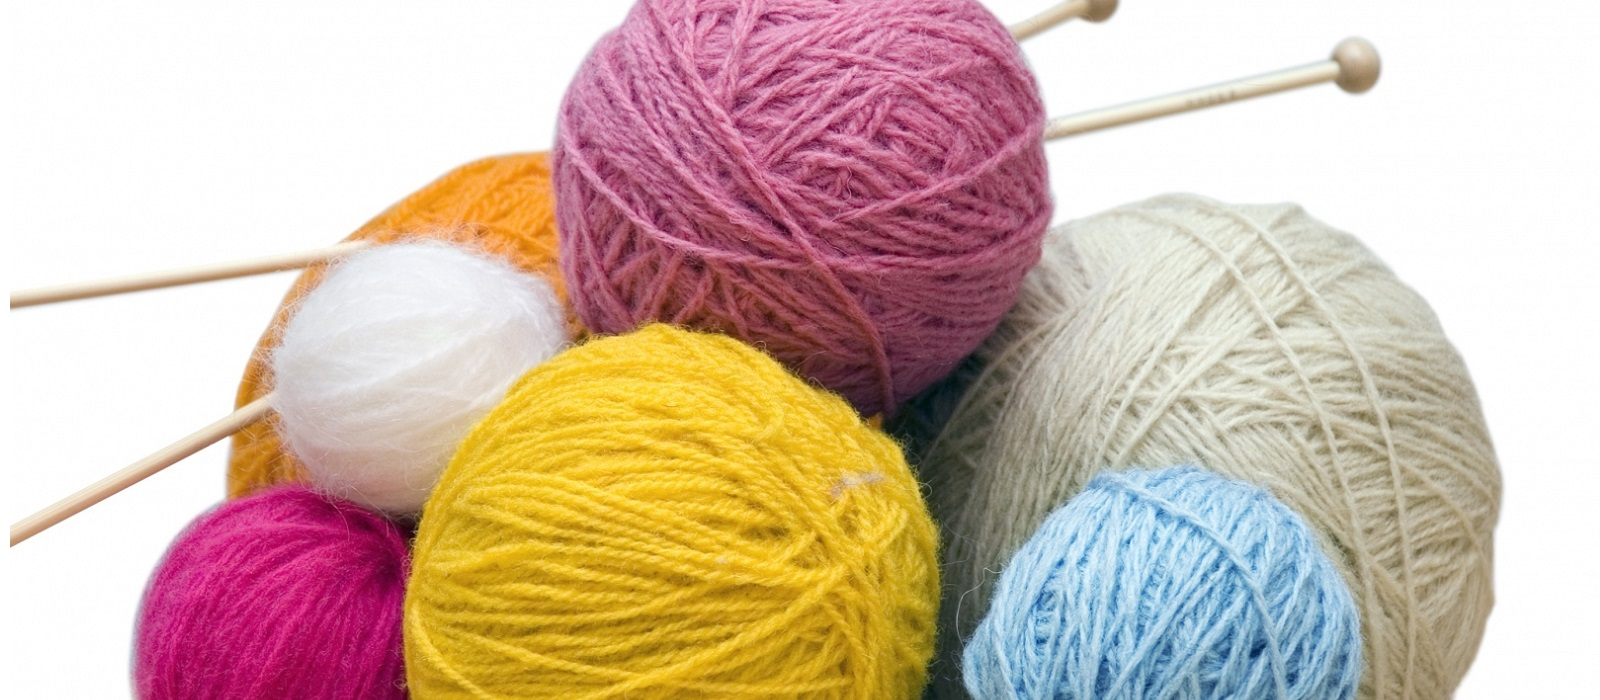 Copy of Copy of Copy of yarn balls